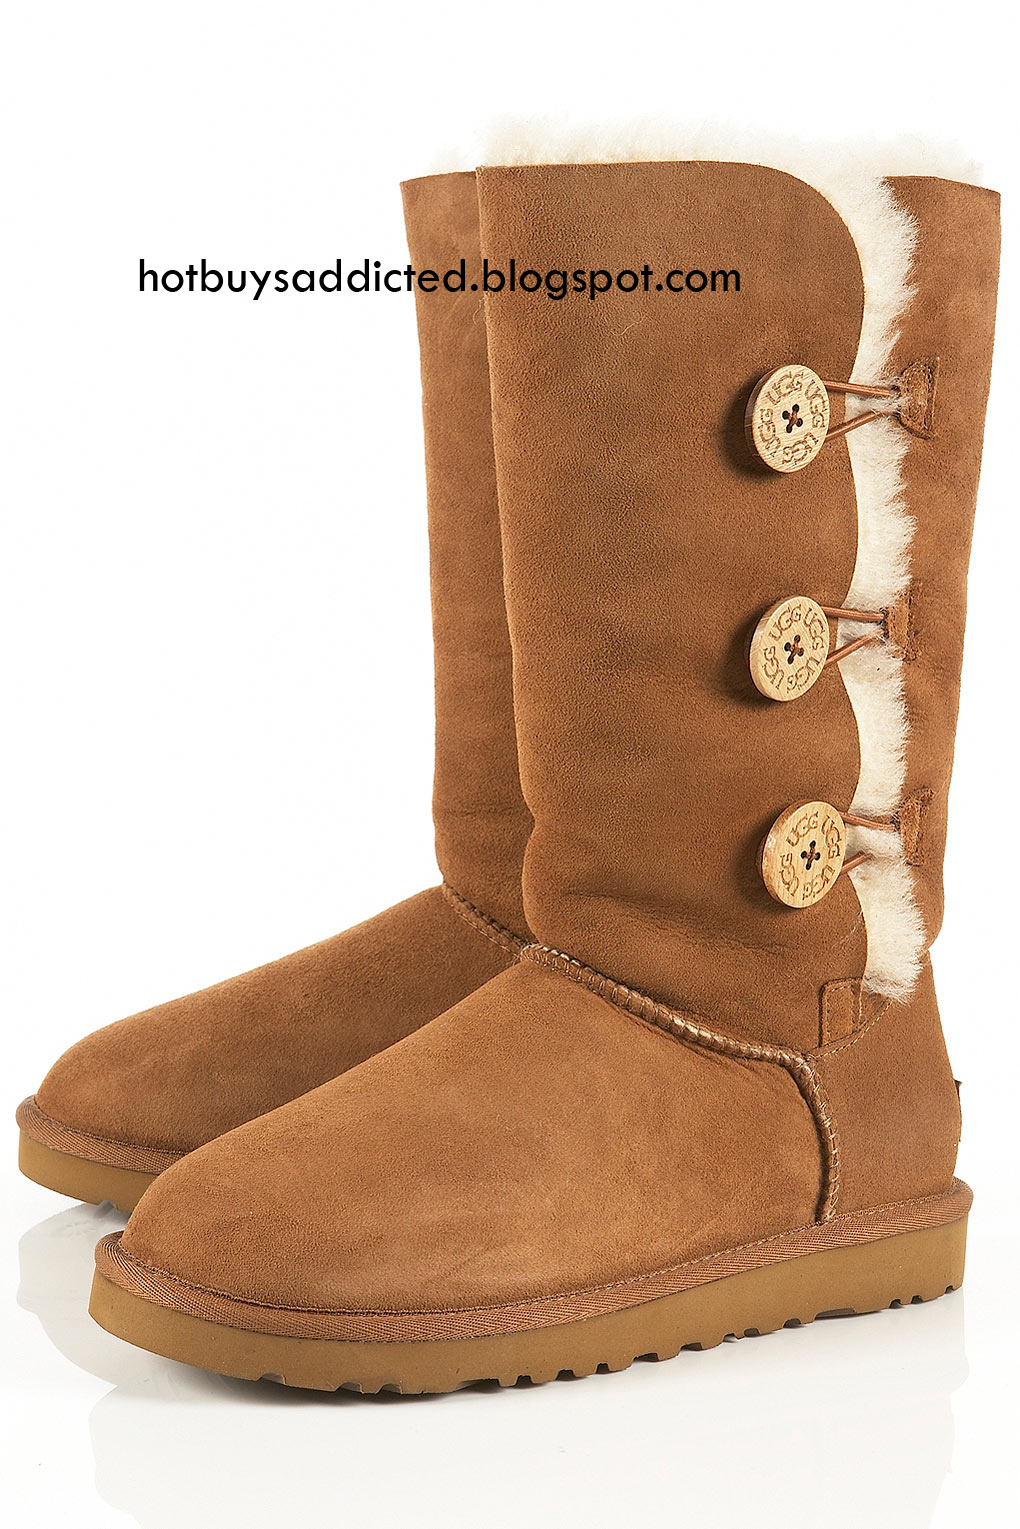 Uggs Boots On Sale Outlet Shop